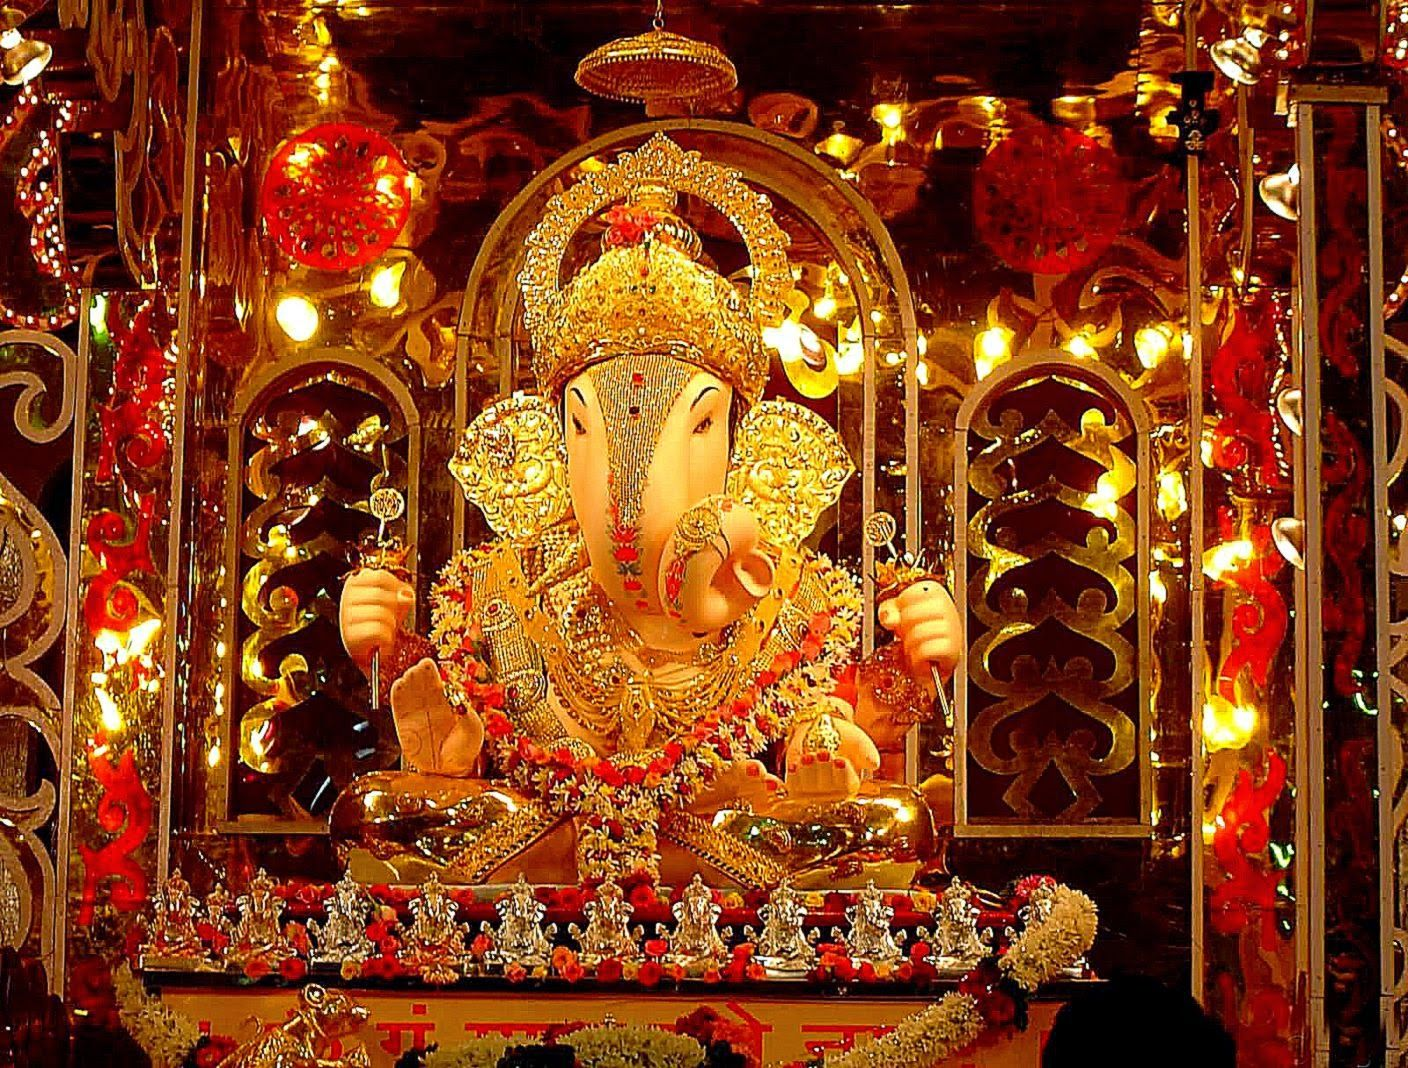 Lord Ganesha Live HD Wallpaper Android Apps on Google